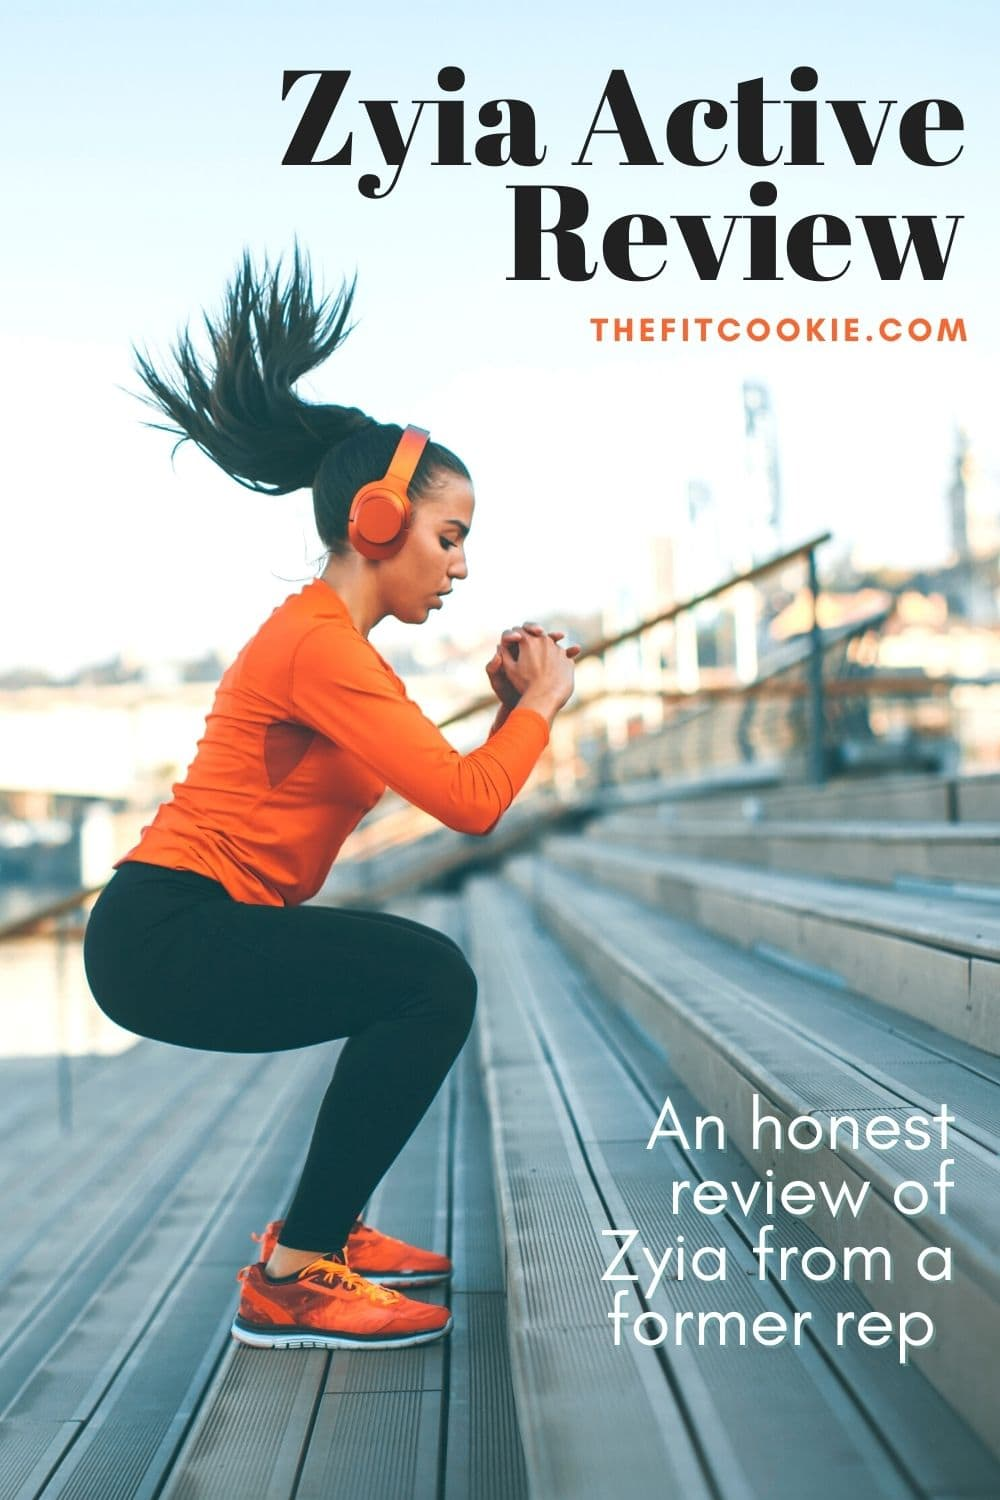 """photo of woman working out with text overlay """"zyia active review"""""""